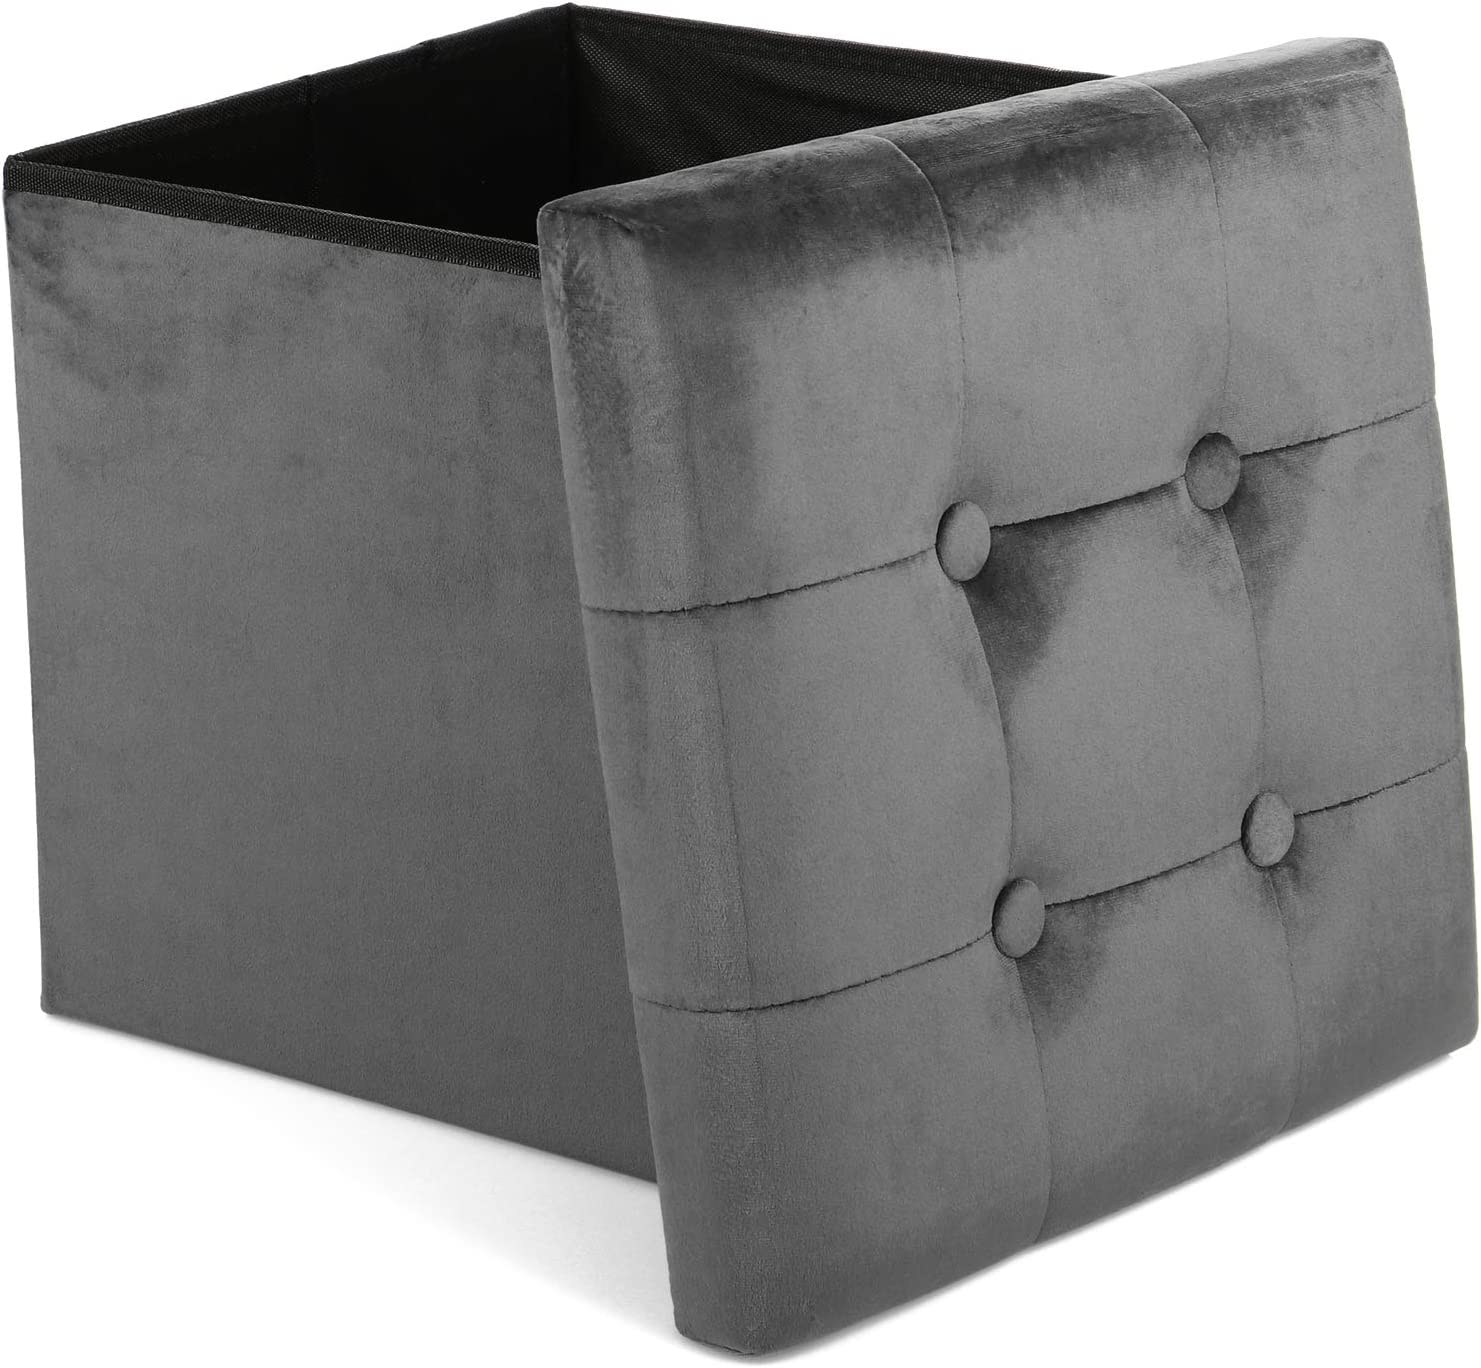 com-four® Stool with Storage Space – Foldable Cube Seat – Padded Storage Box with Lid – Great as Stool, Footstool, Storage and Small Footstool blue Grey